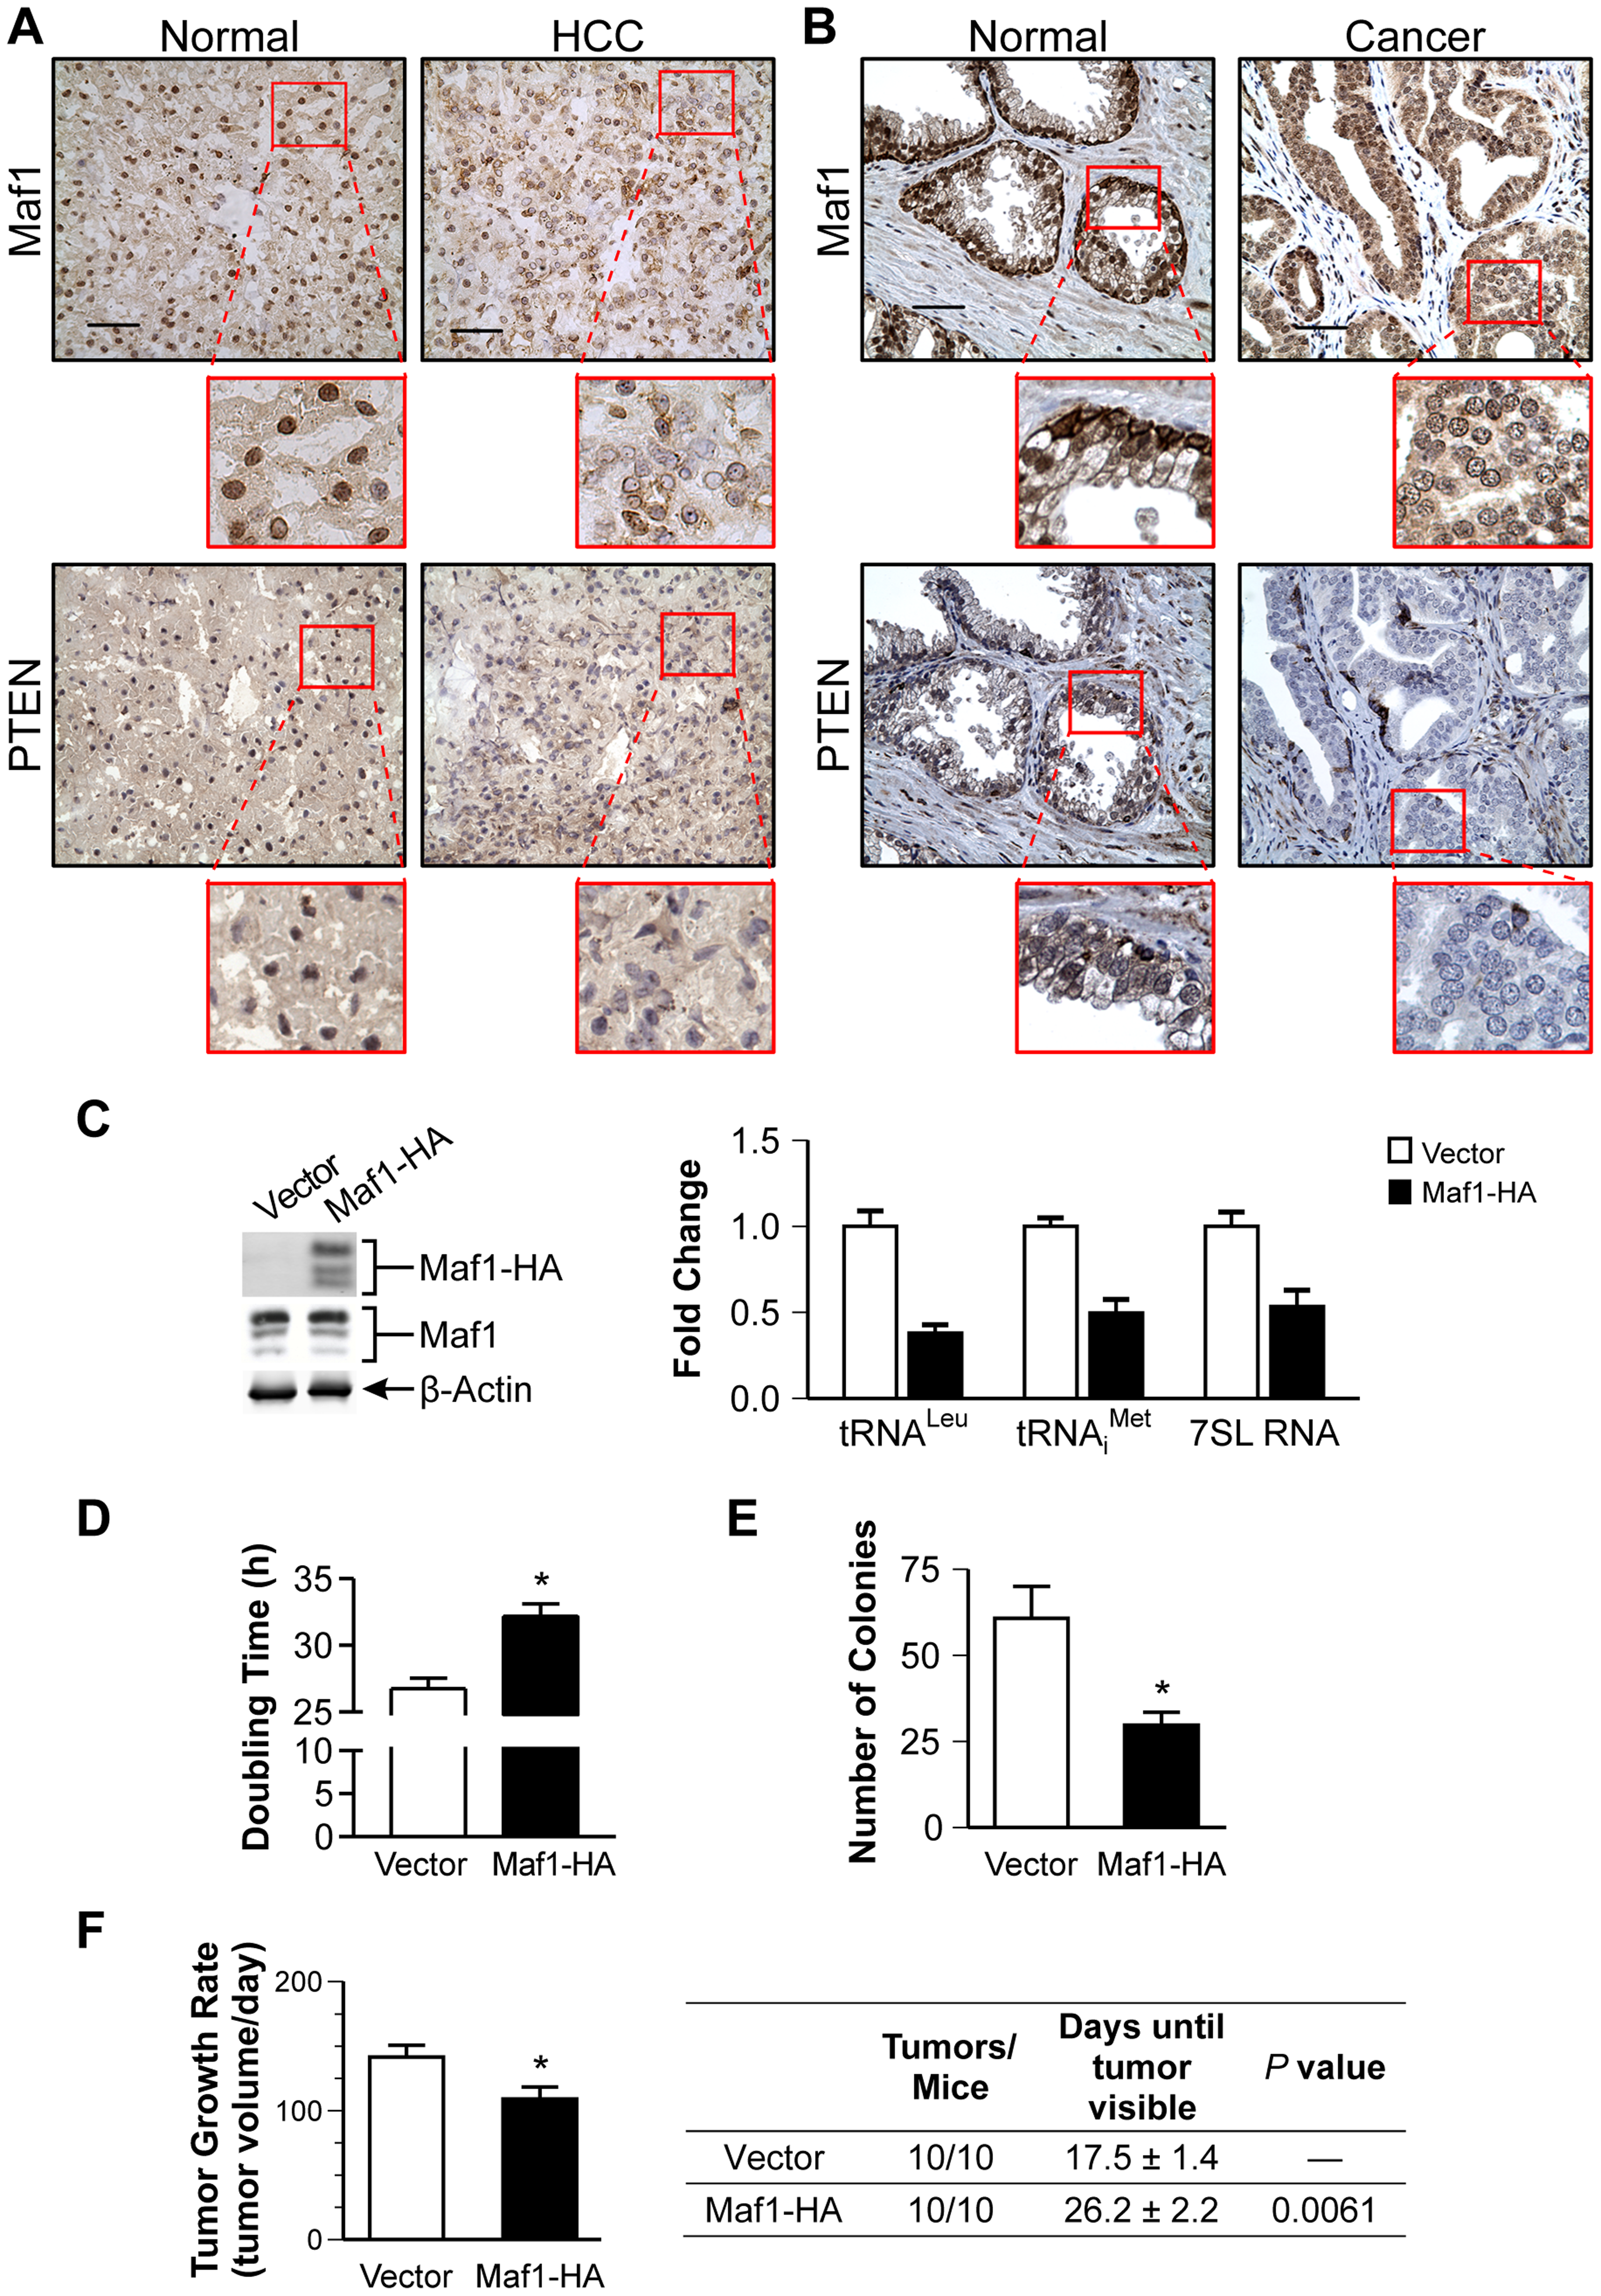 Increased Maf1 expression suppresses cellular transformation and tumorigenesis, consistent with its diminished expression in human cancer tissues.